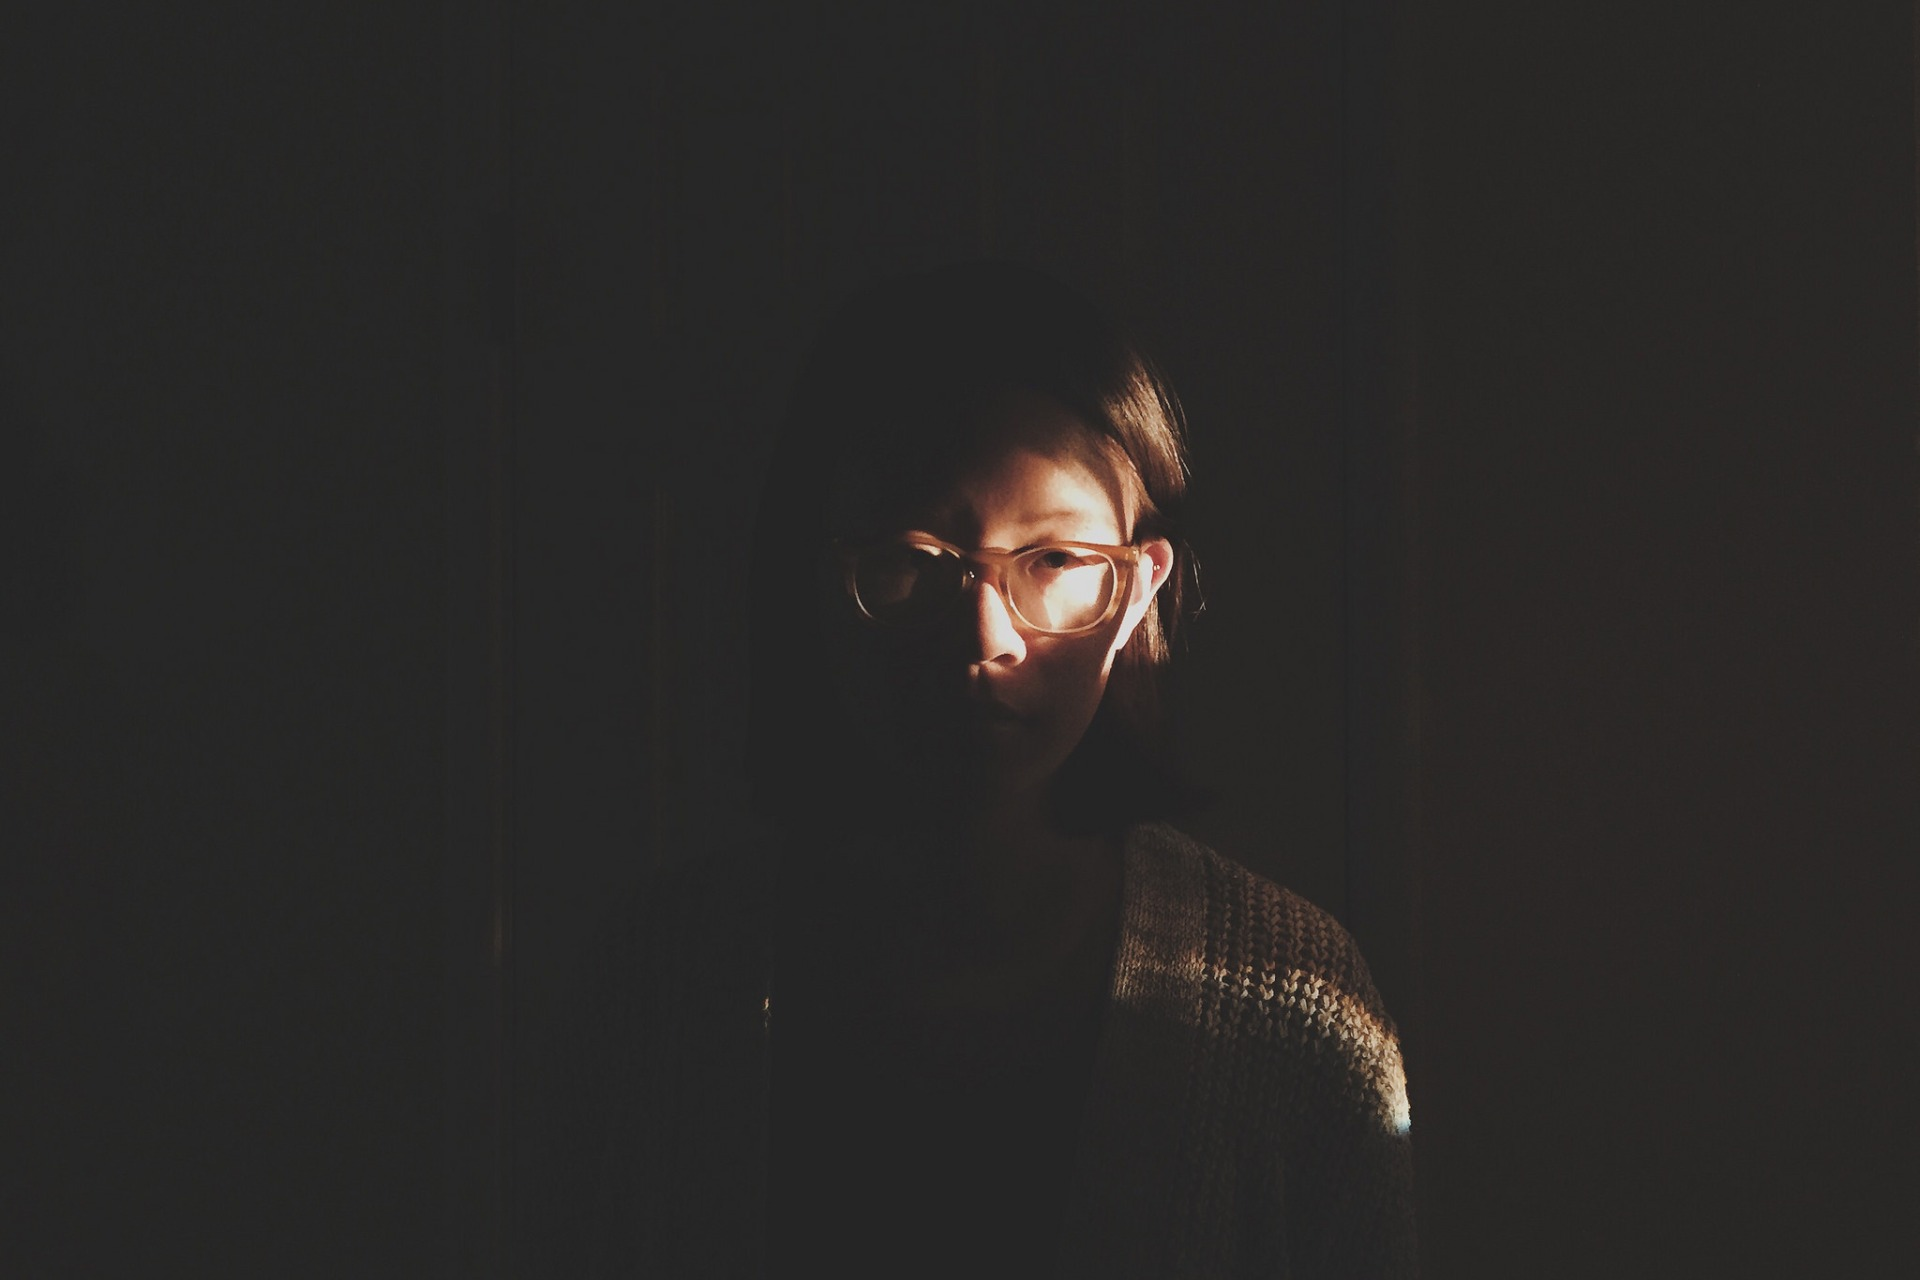 girl in the dark shadows with sun beaming on her face and glasses, thinking, hesitant, in the moment, reflecting